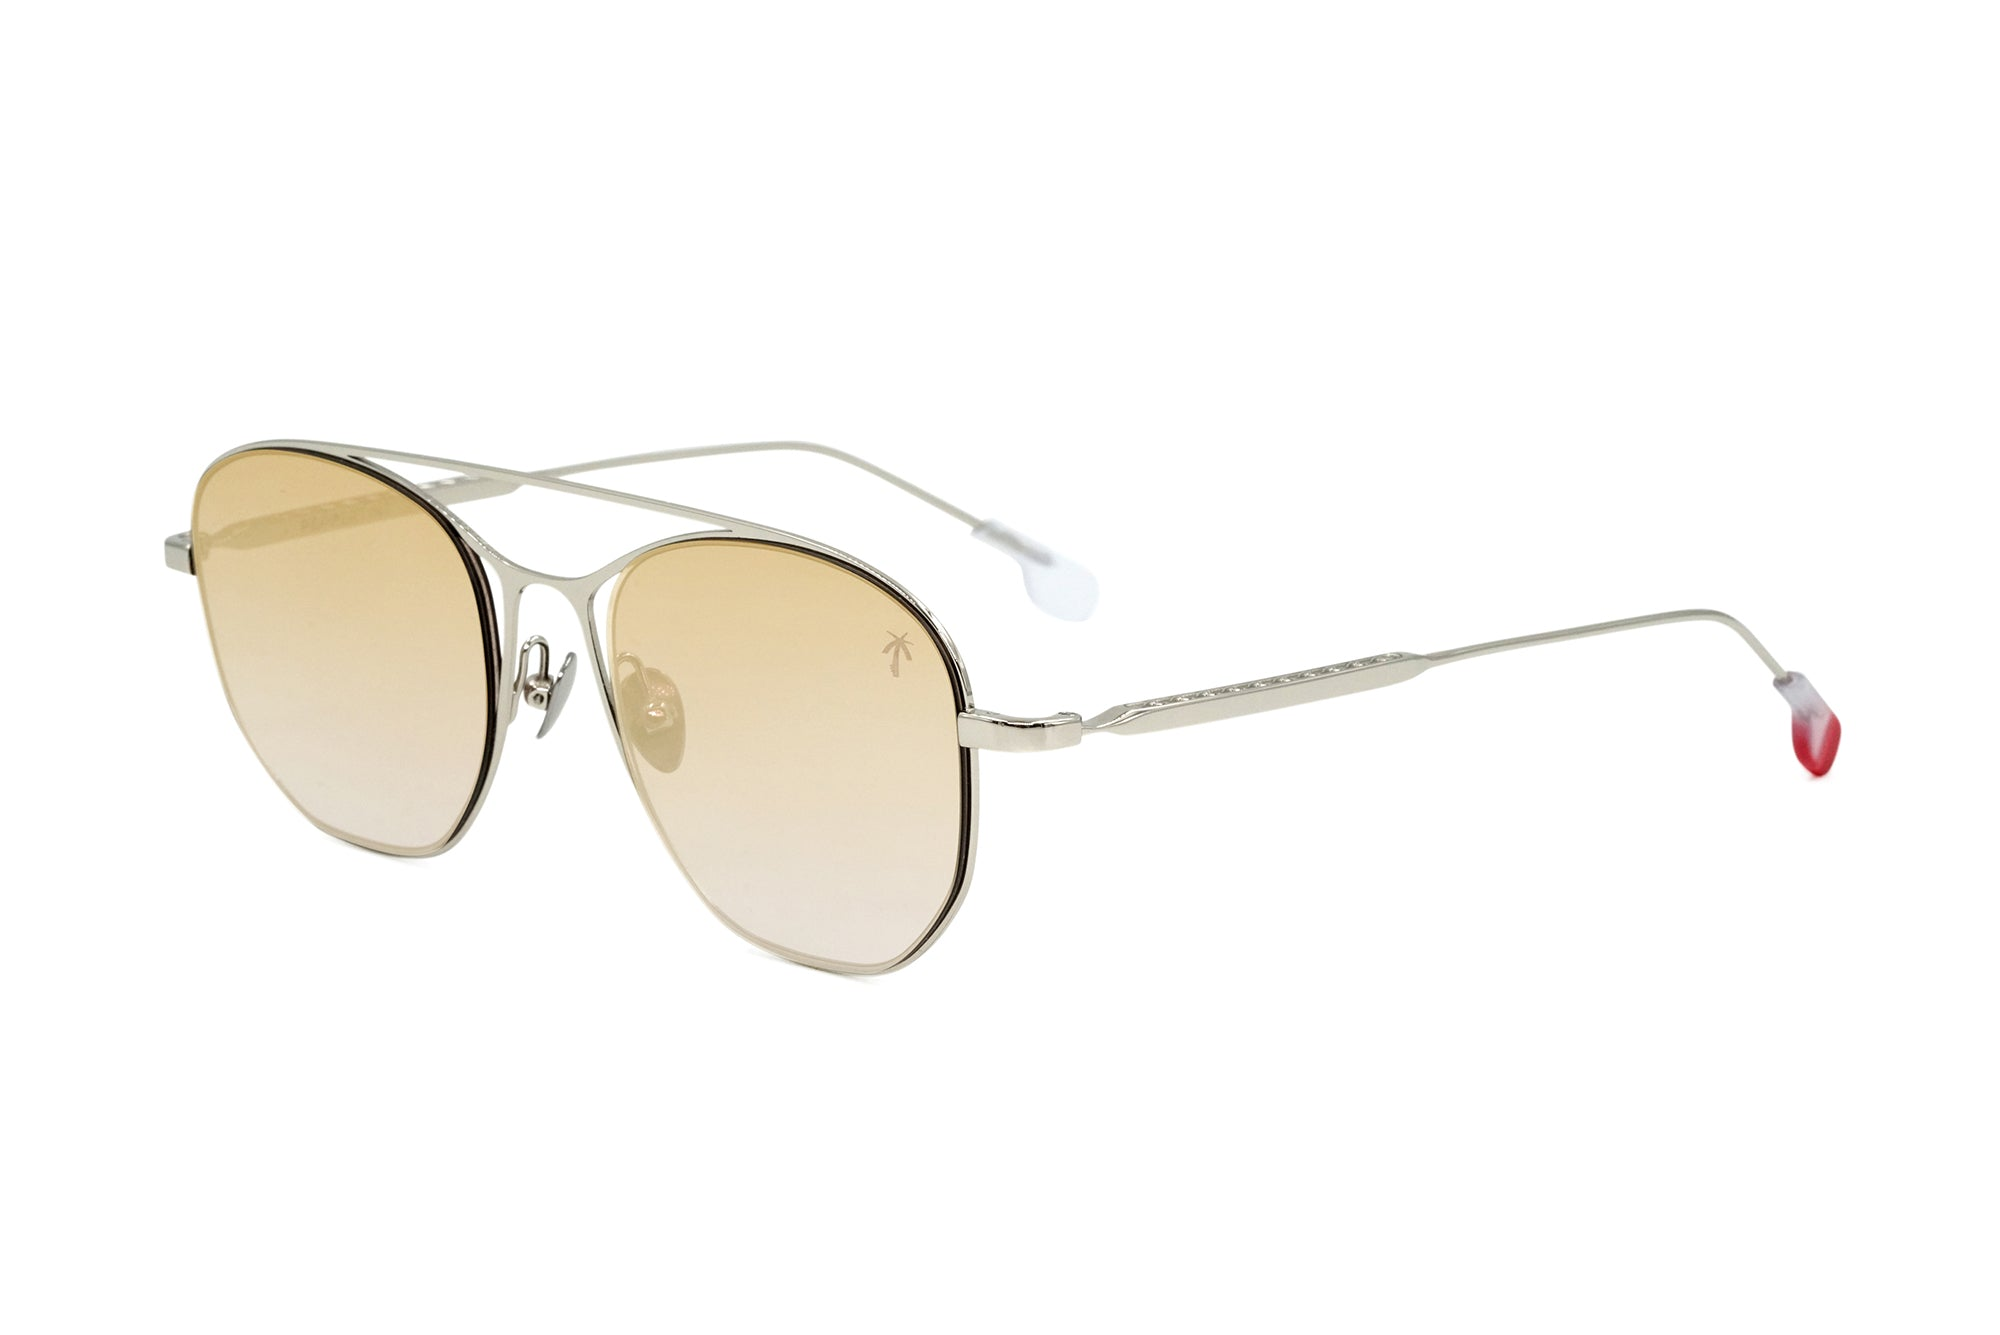 Mateo in Gold Mirror Lens - Peppertint - Designer sunglasses